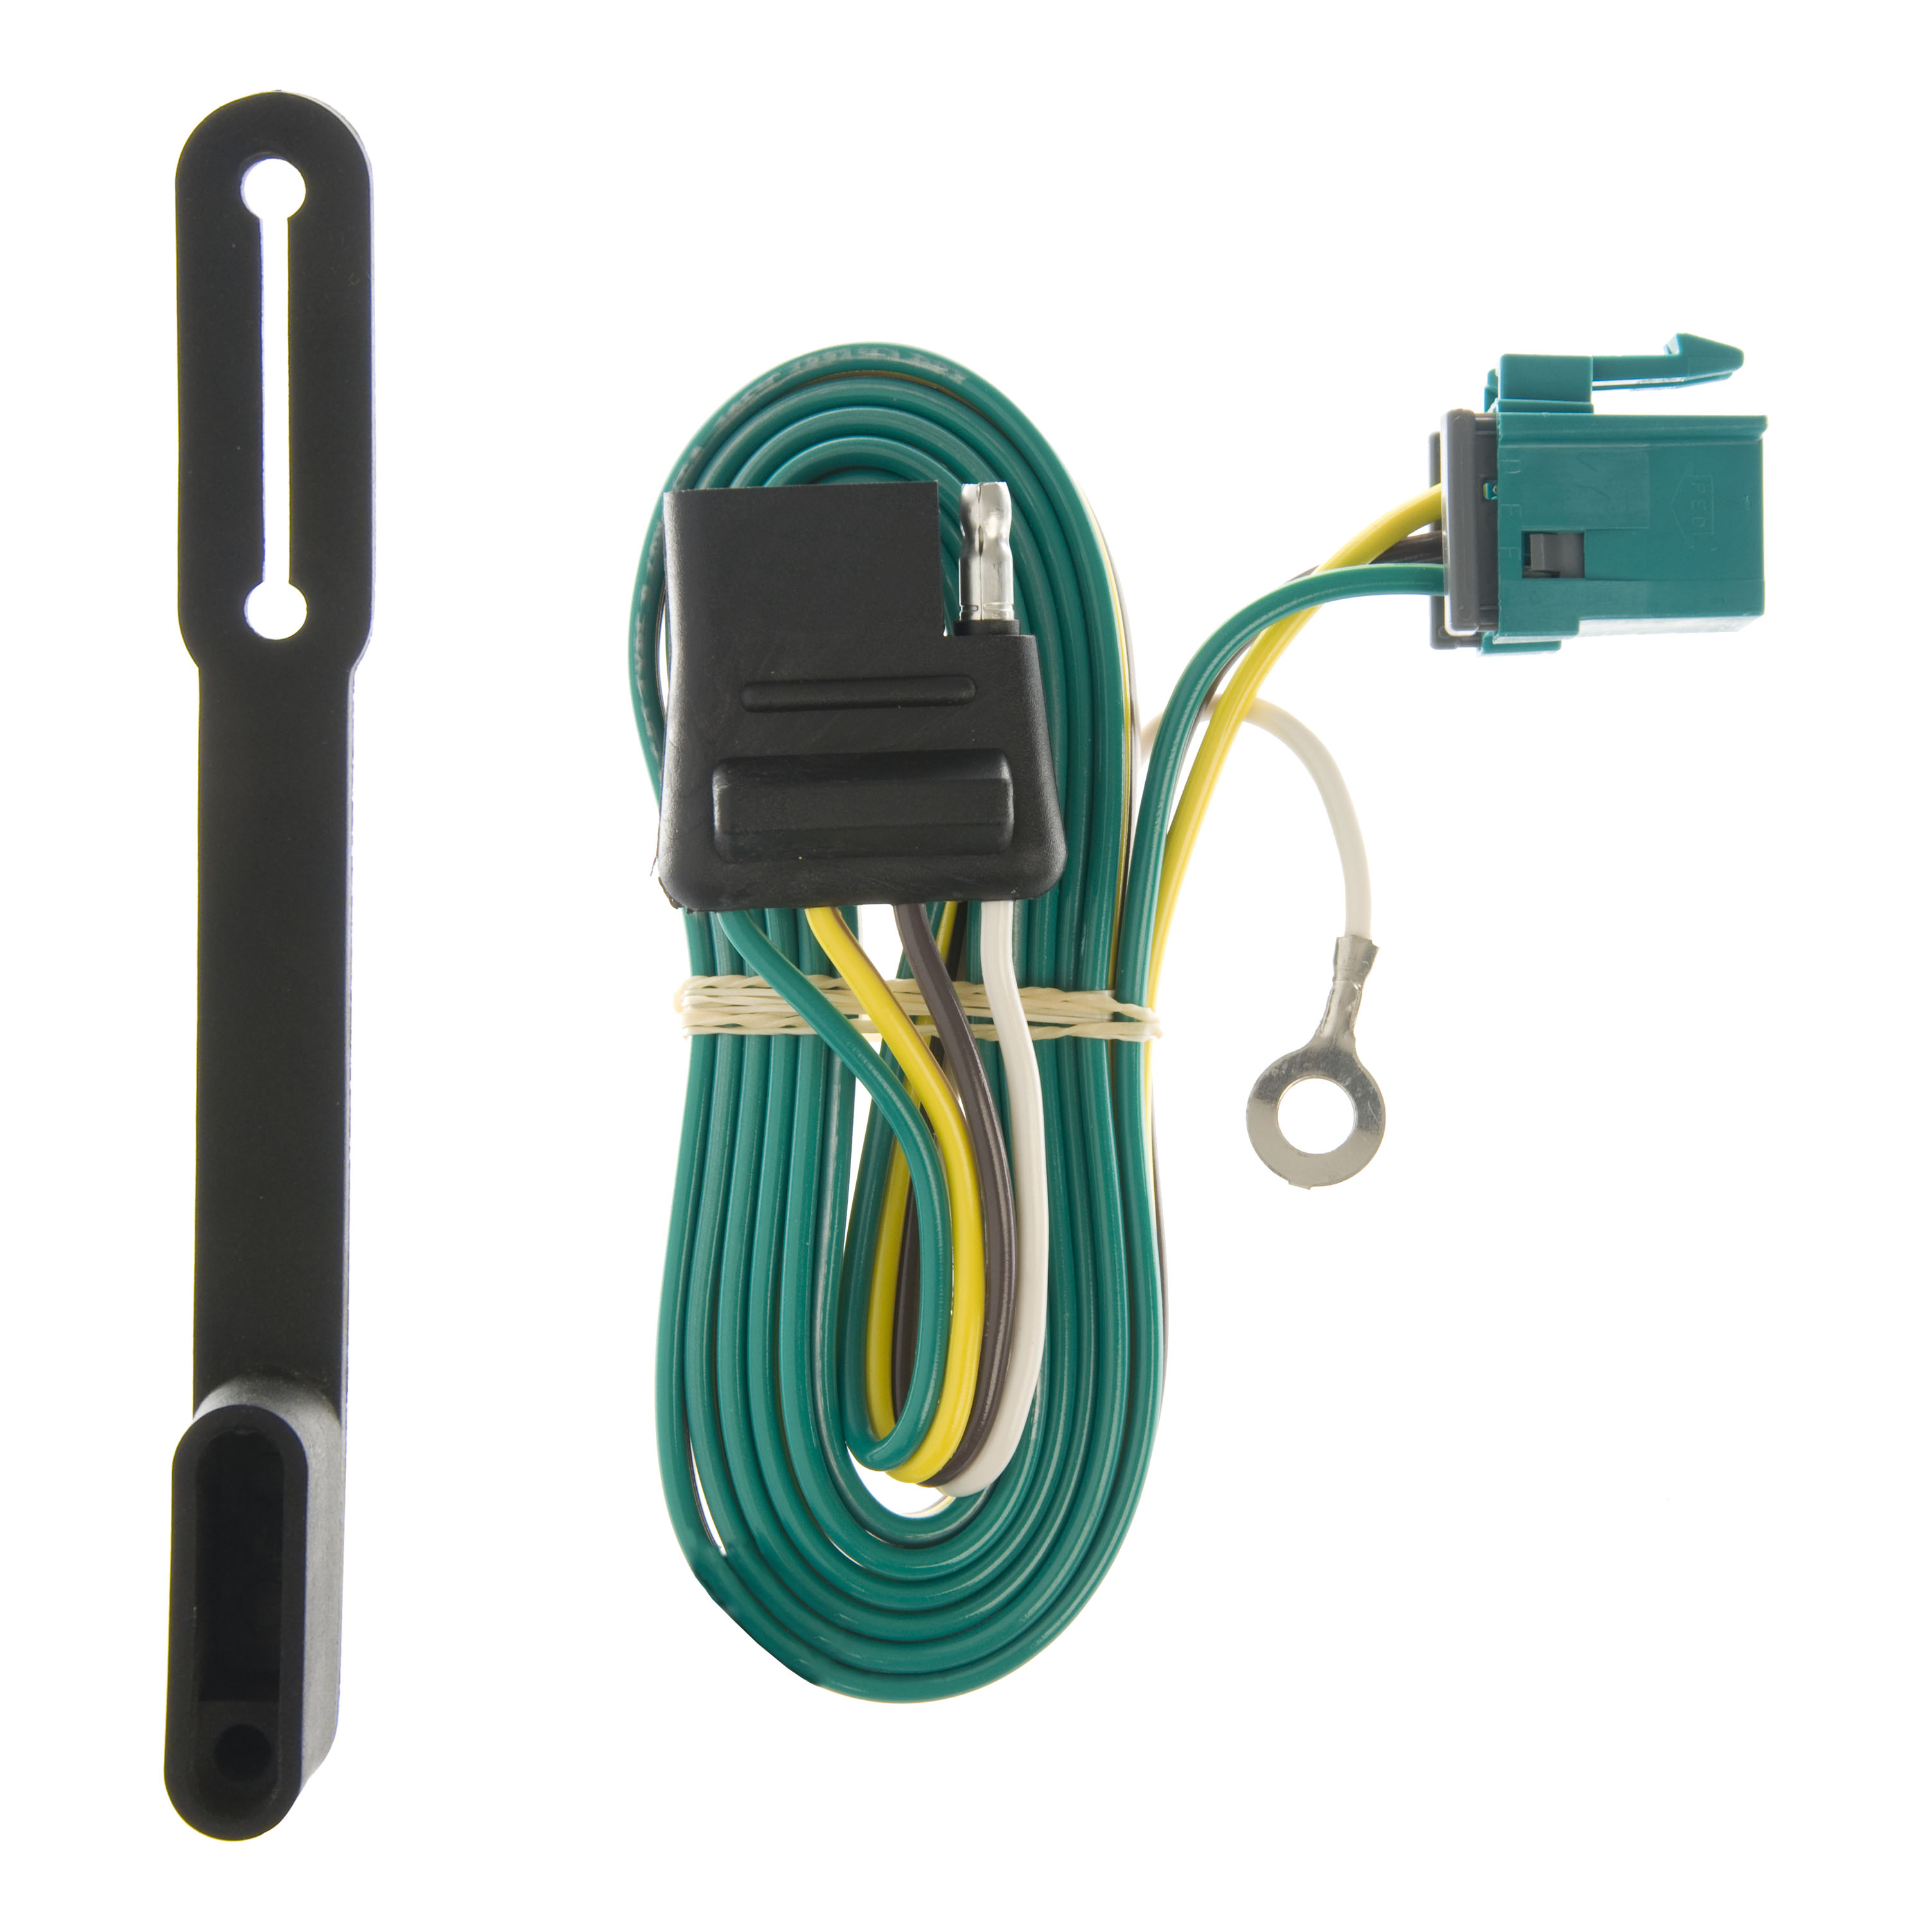 Trailer Connector Kit Custom Wiring Curt Manufacturing Stock Photo Picture 1 Of 2